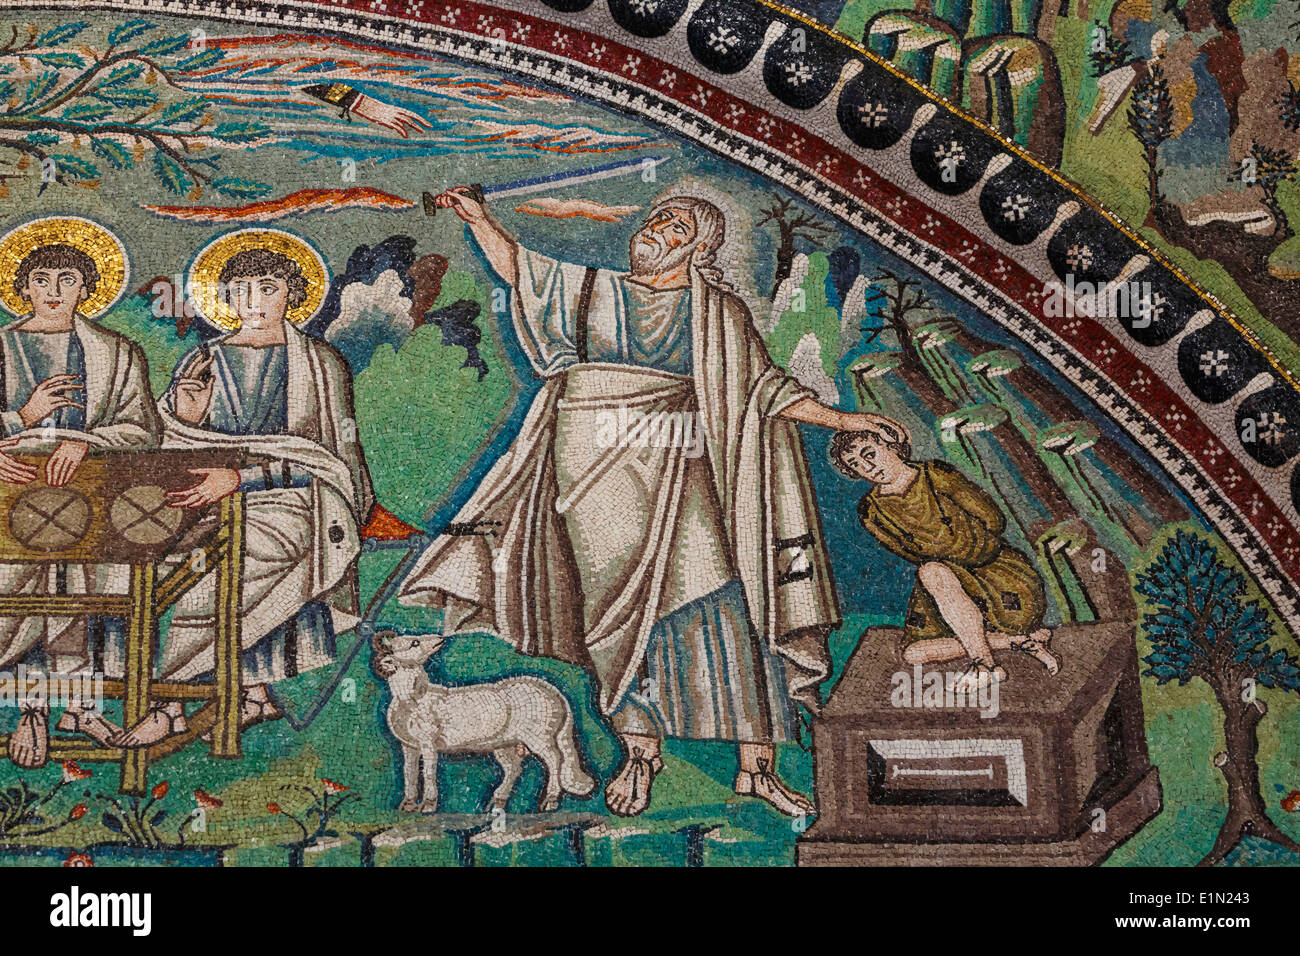 Ravenna, Ravenna Province, Italy. Mosaic in San Vitale basilica. Detail of The Hospitality of Abraham and the Sacrifice of Isaac - Stock Image